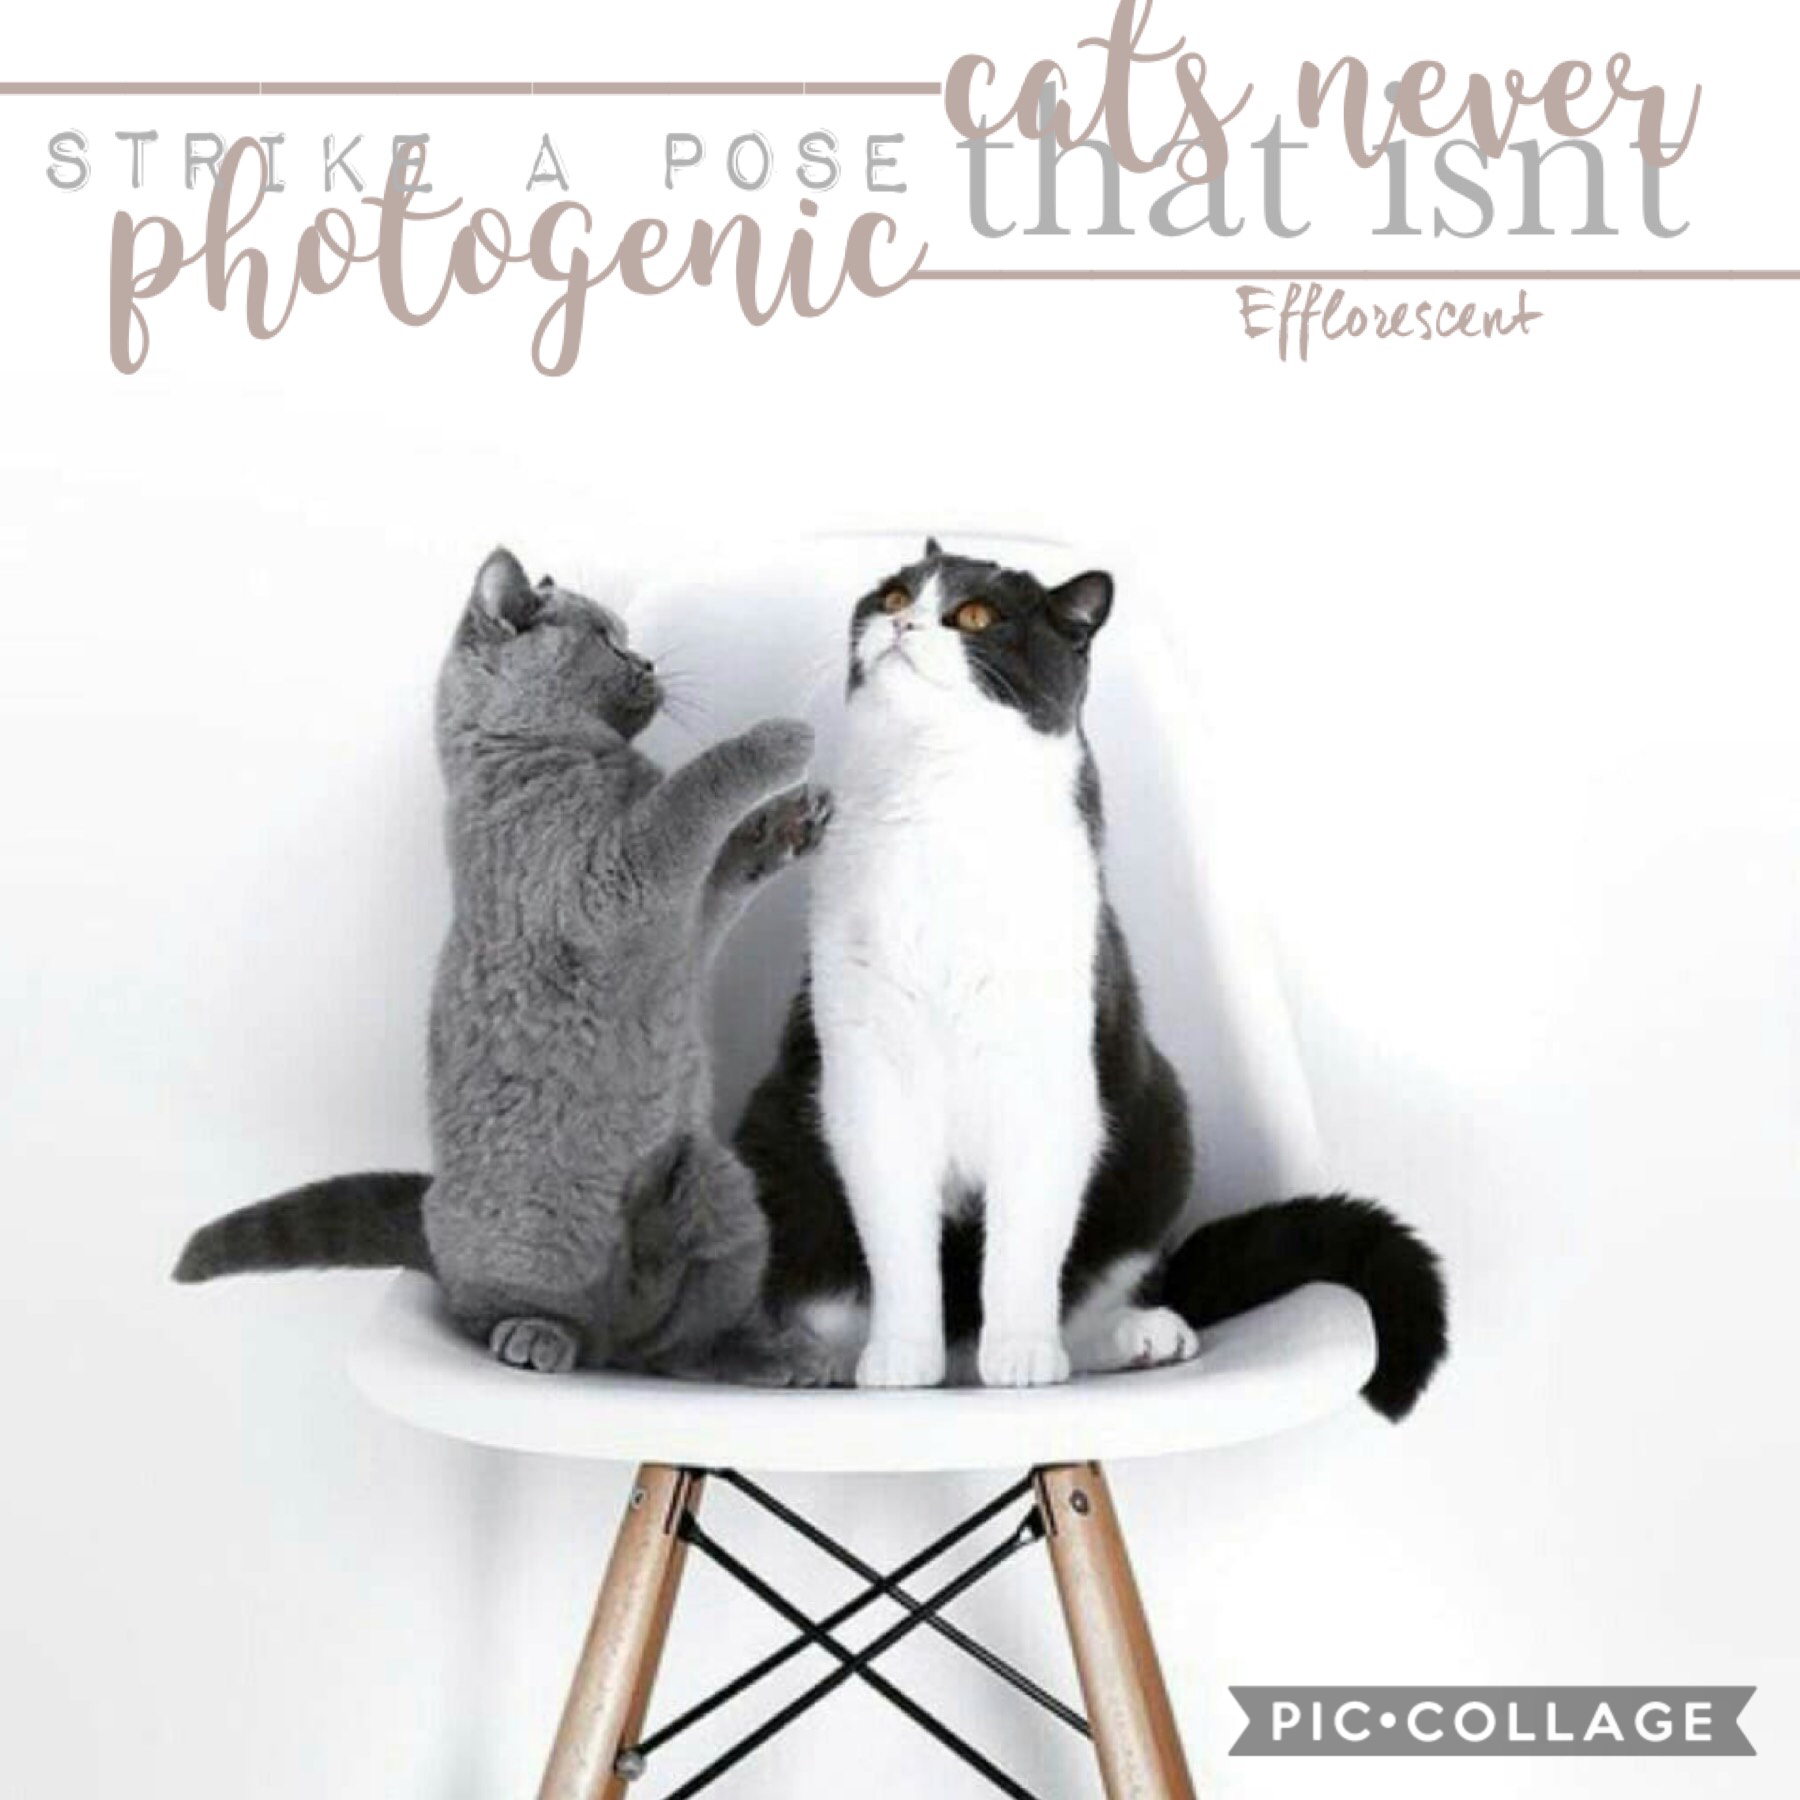 Entered in @kittens4life contest!🐱